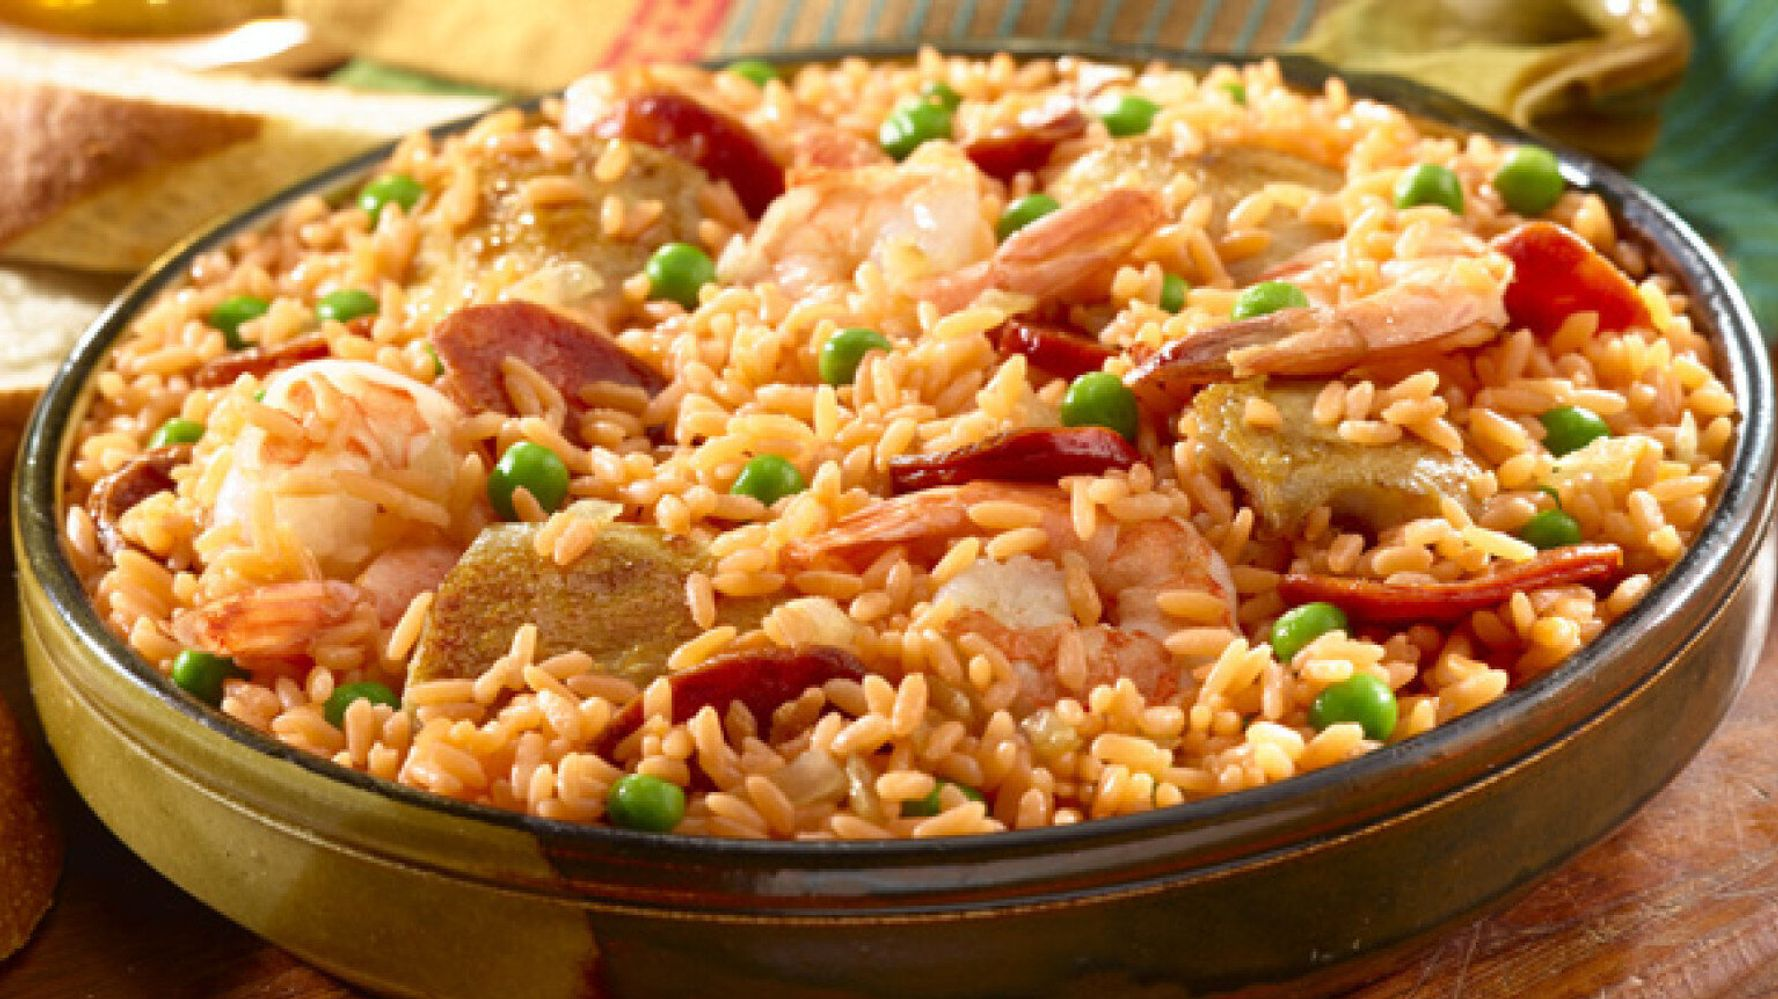 National Paella Day - Simple and Easy to Follow Paella Recipes